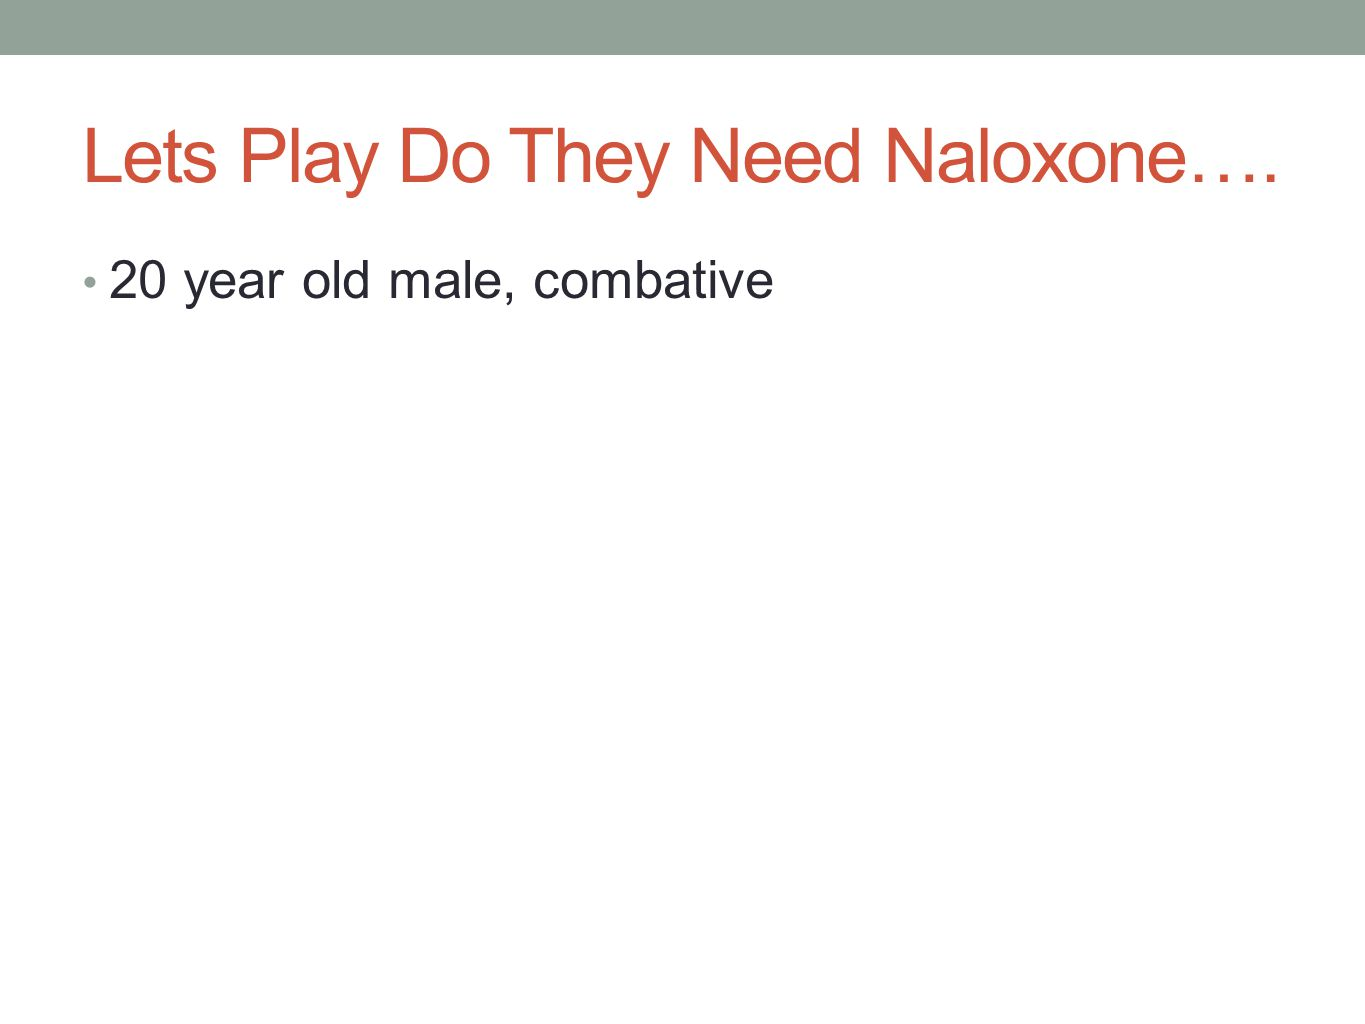 Lets Play Do They Need Naloxone…. 20 year old male, combative